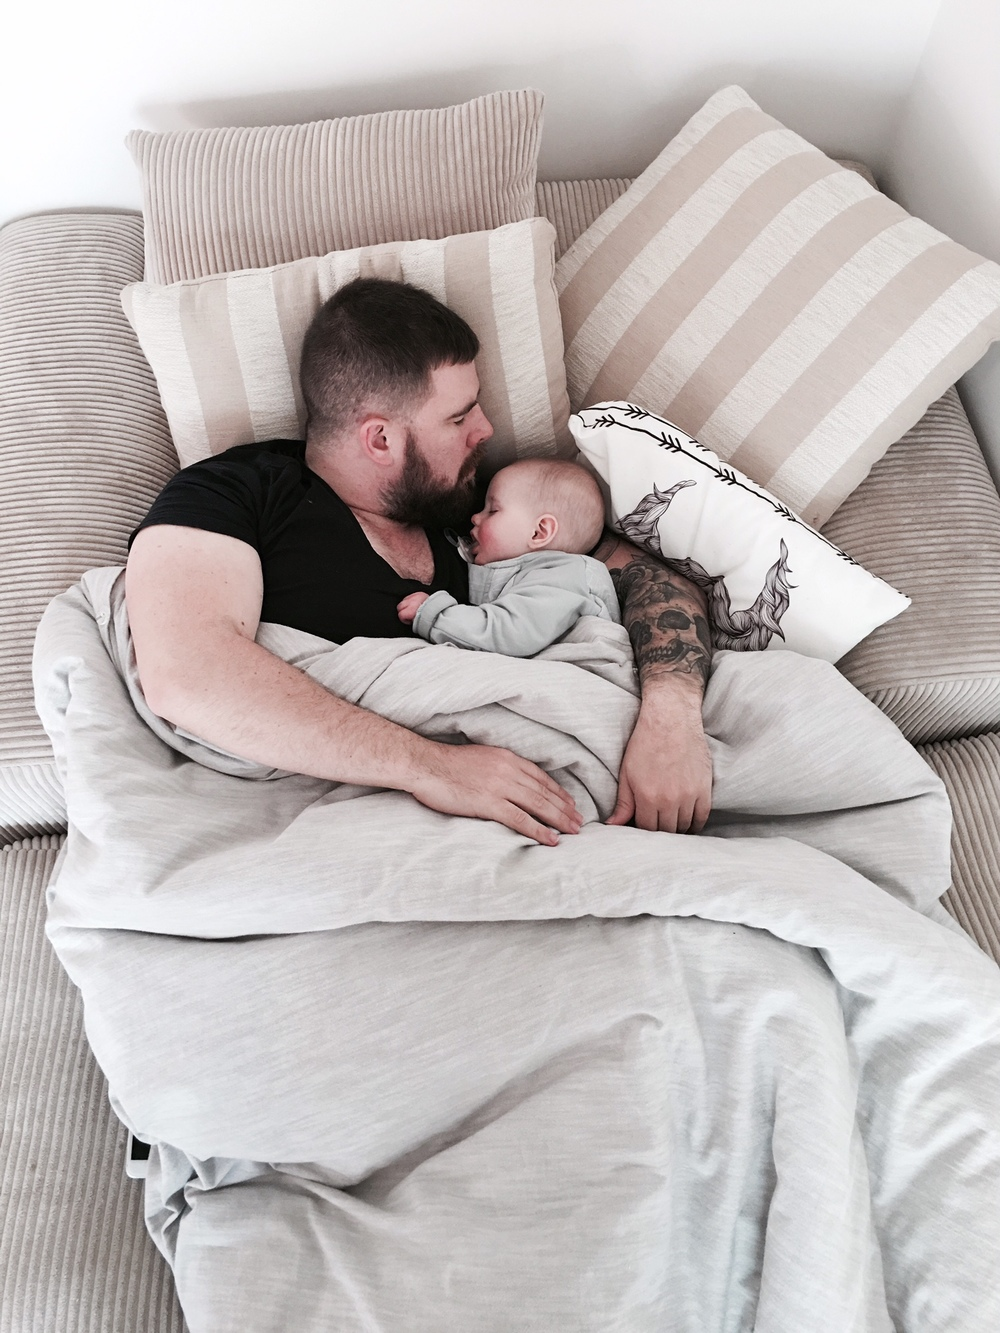 At least he'll snuggle the baby to sleep, useful for something! Just don't breathe on her MC...